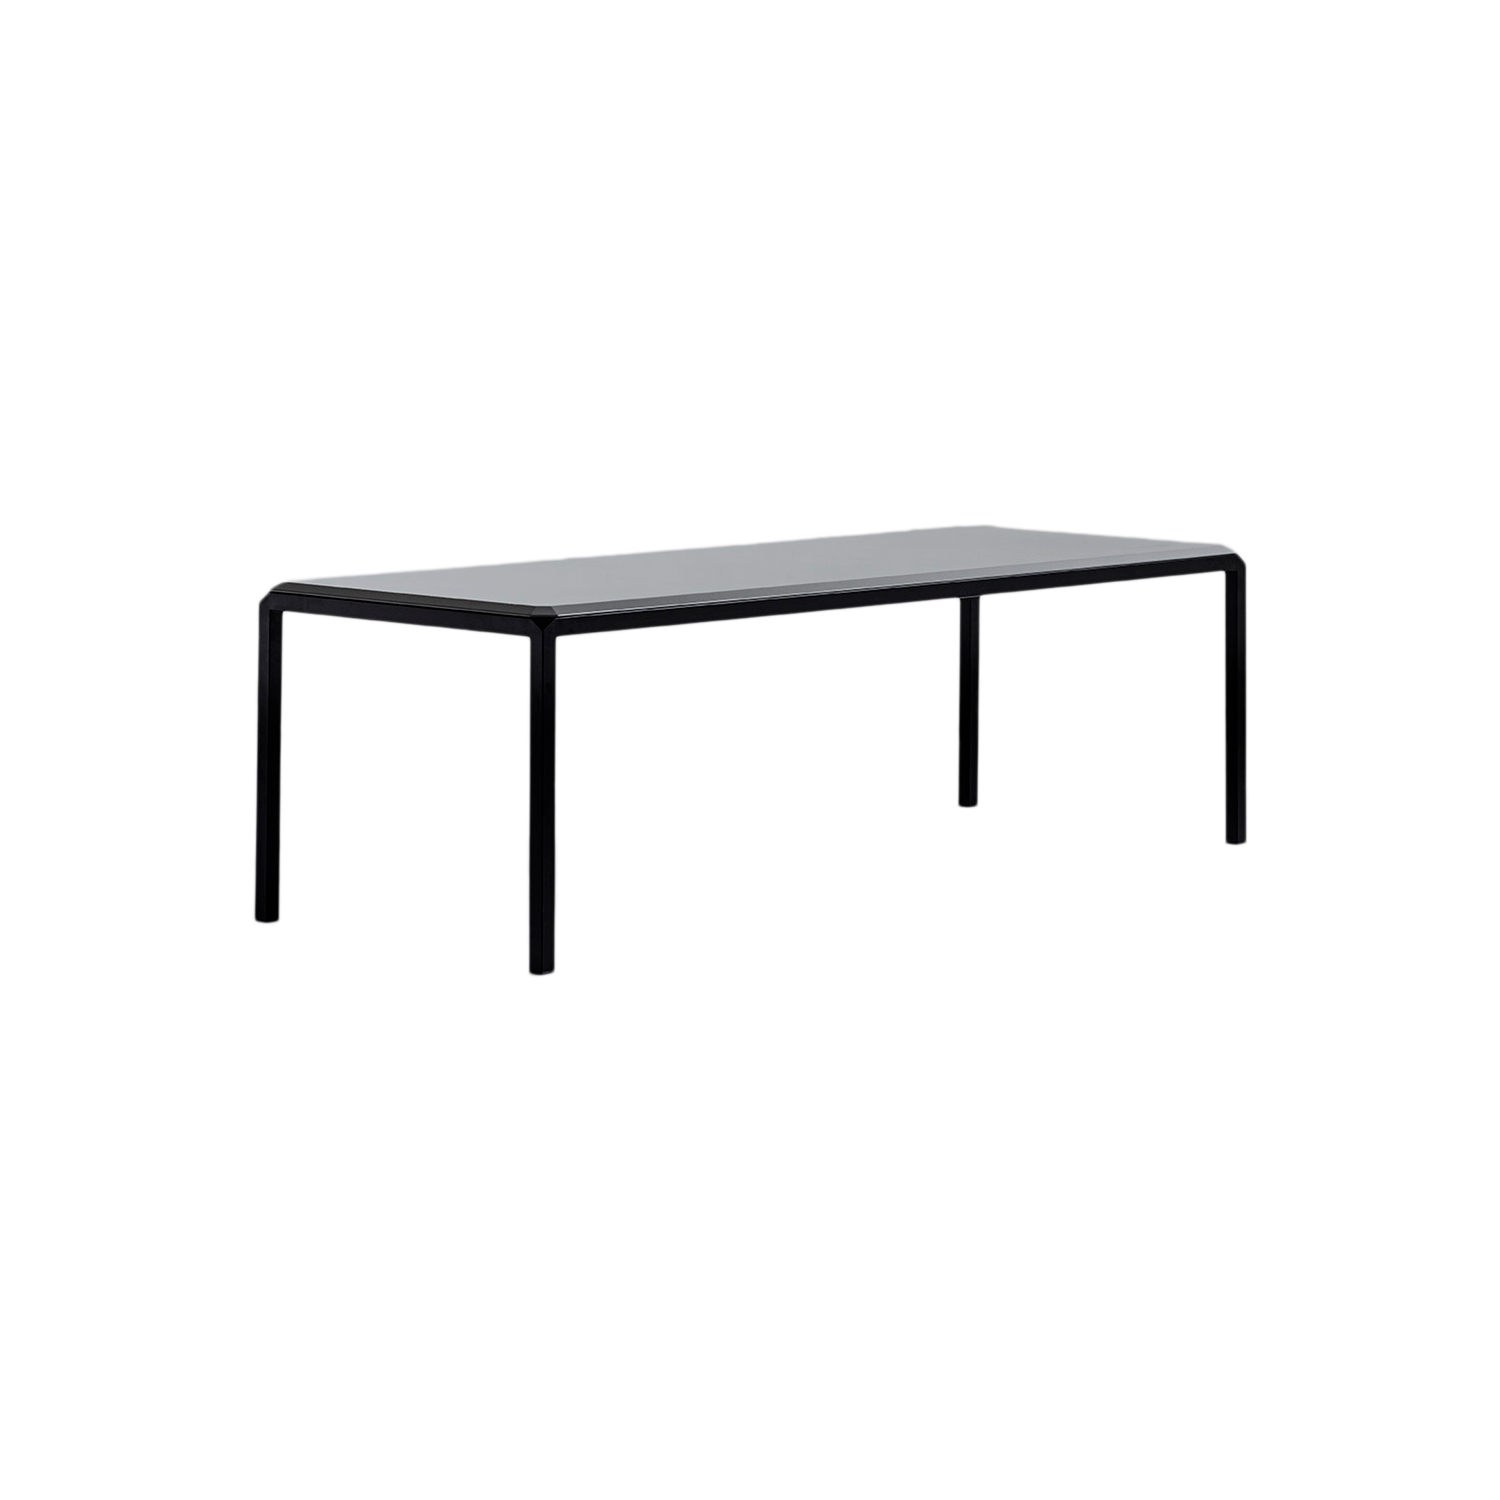 Bebop Dining Table - The Bebop table stands out for the attention to detail, quality workmanship, and the contrasting industrial iron frame and fine marble or lacquered top. It has a steel structure, with a top in marble or lacquered wood featuring four rounded corners that give boldness to details. The larger table has top options only in Scratchproof Lacquered MDF, Bianco Michelangelo Marble and Calacatta Oro Marble. A range of materials, colours and finishes are available in a number of combinations. 